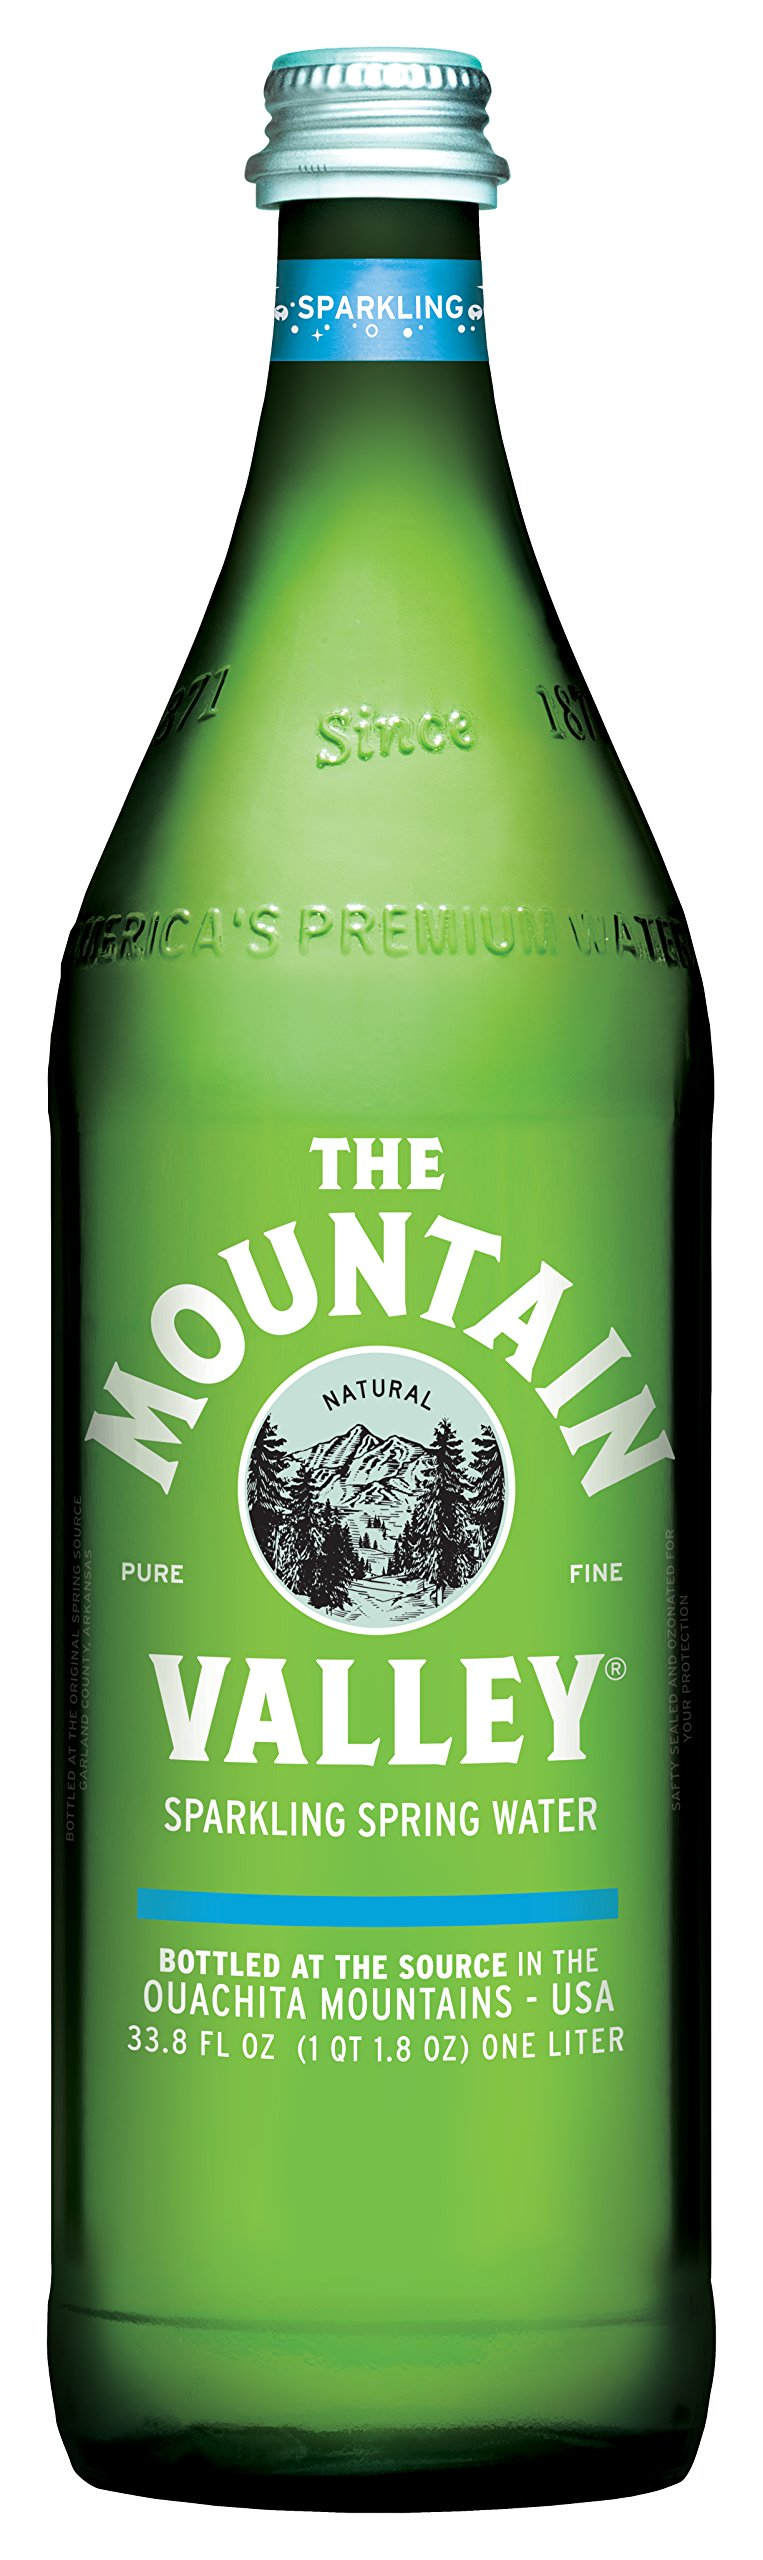 THE MOUNTAIN VALLEY NATURAL PURE FINE Sparkling Spring Water 1 L. Pack of 12